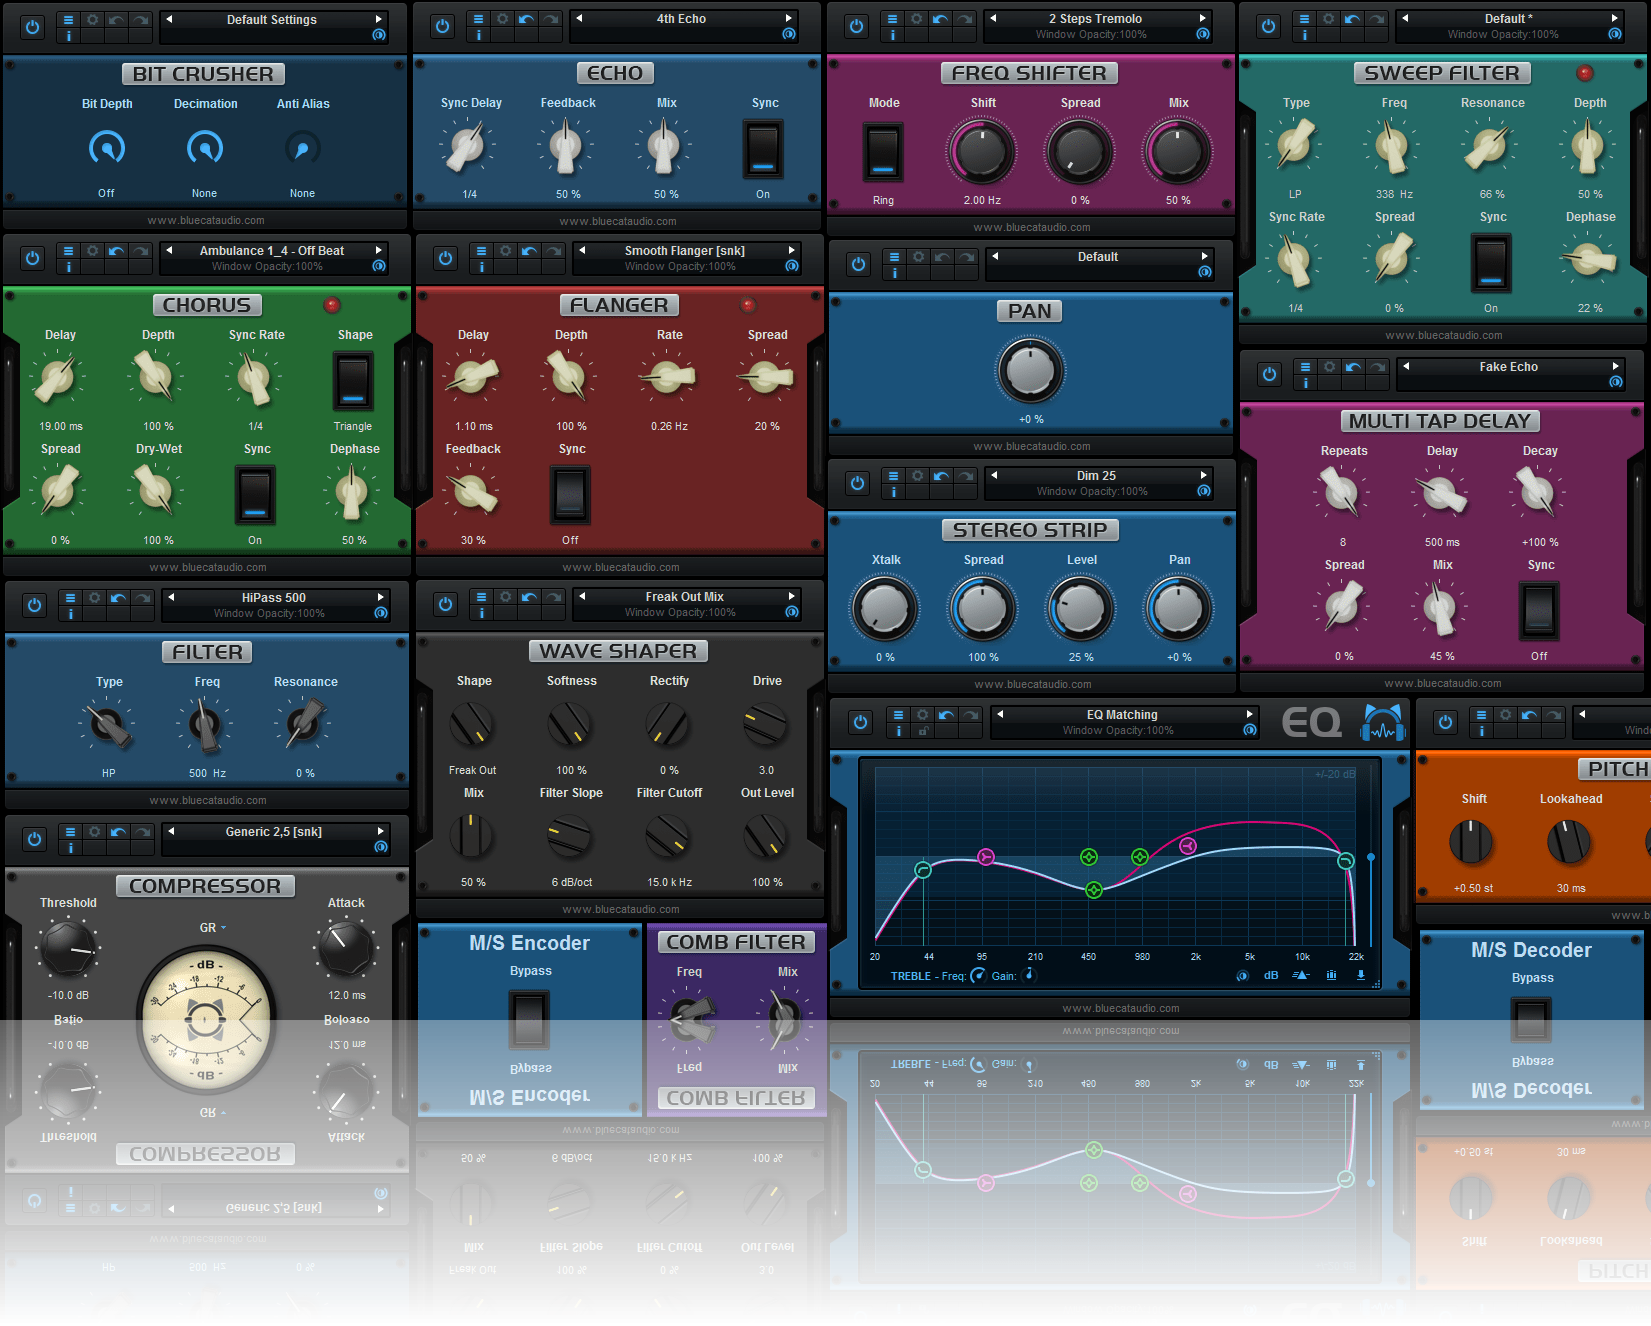 Blue Cat's PatchWork - Inludes 25 top notch built-in audio effects: EQ, compressor, gate, ducker, flanger, phaser, delays...